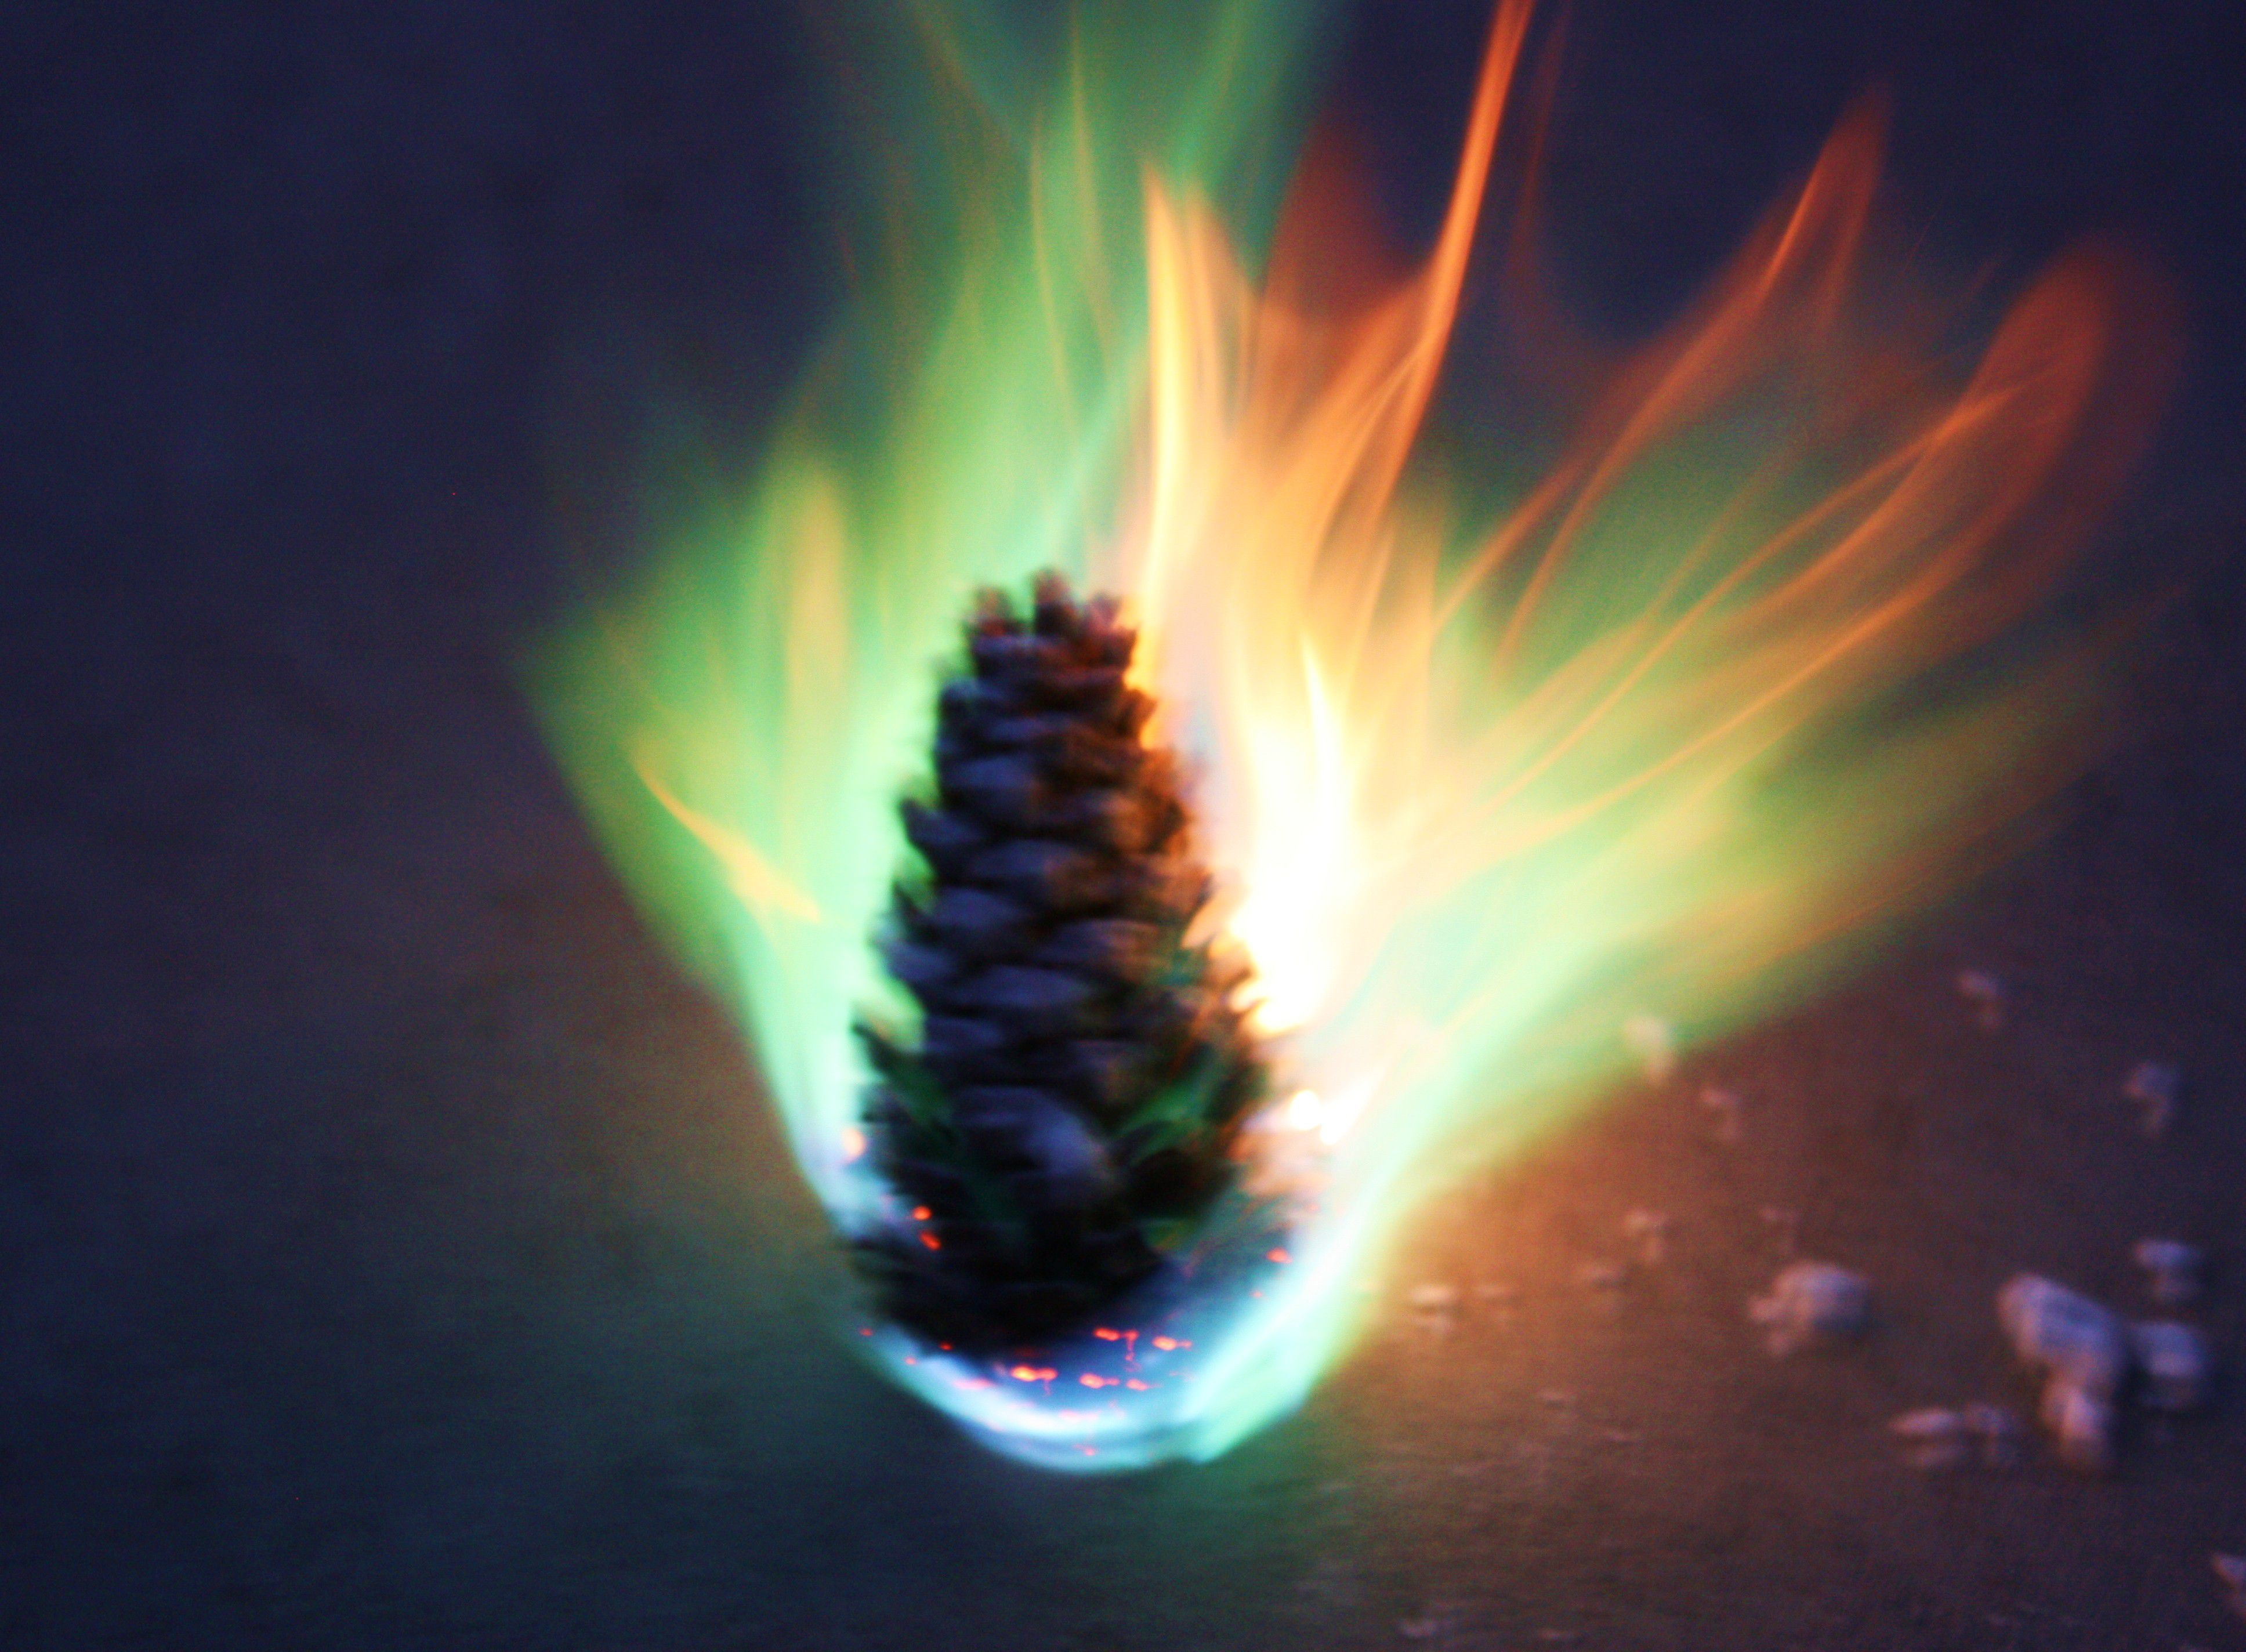 How to Make Colored Fire Pinecones